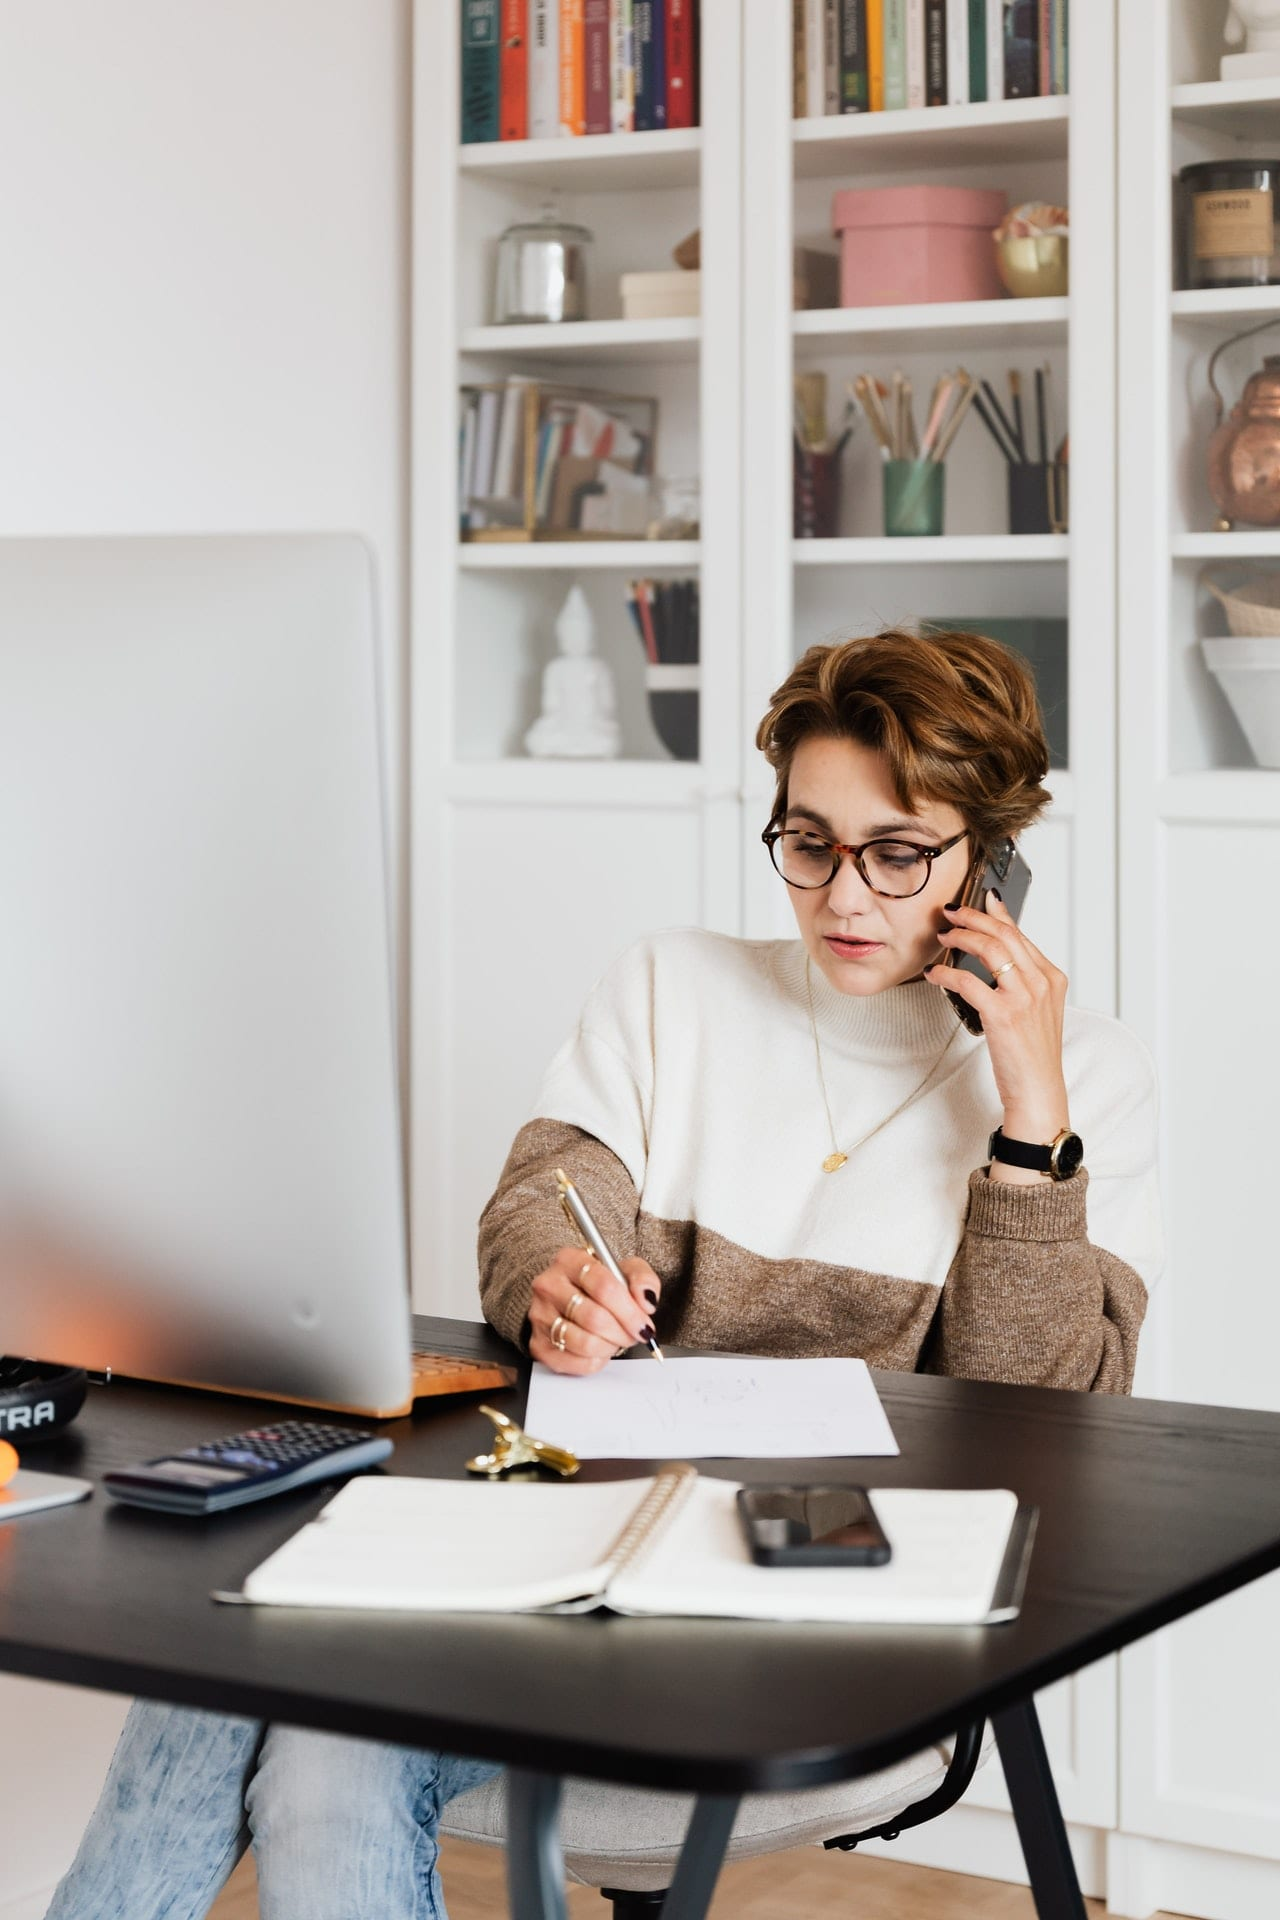 StrategyDriven Managing Your Business Article | 4 Signs It Is Time to Upgrade Your Business Telecoms System